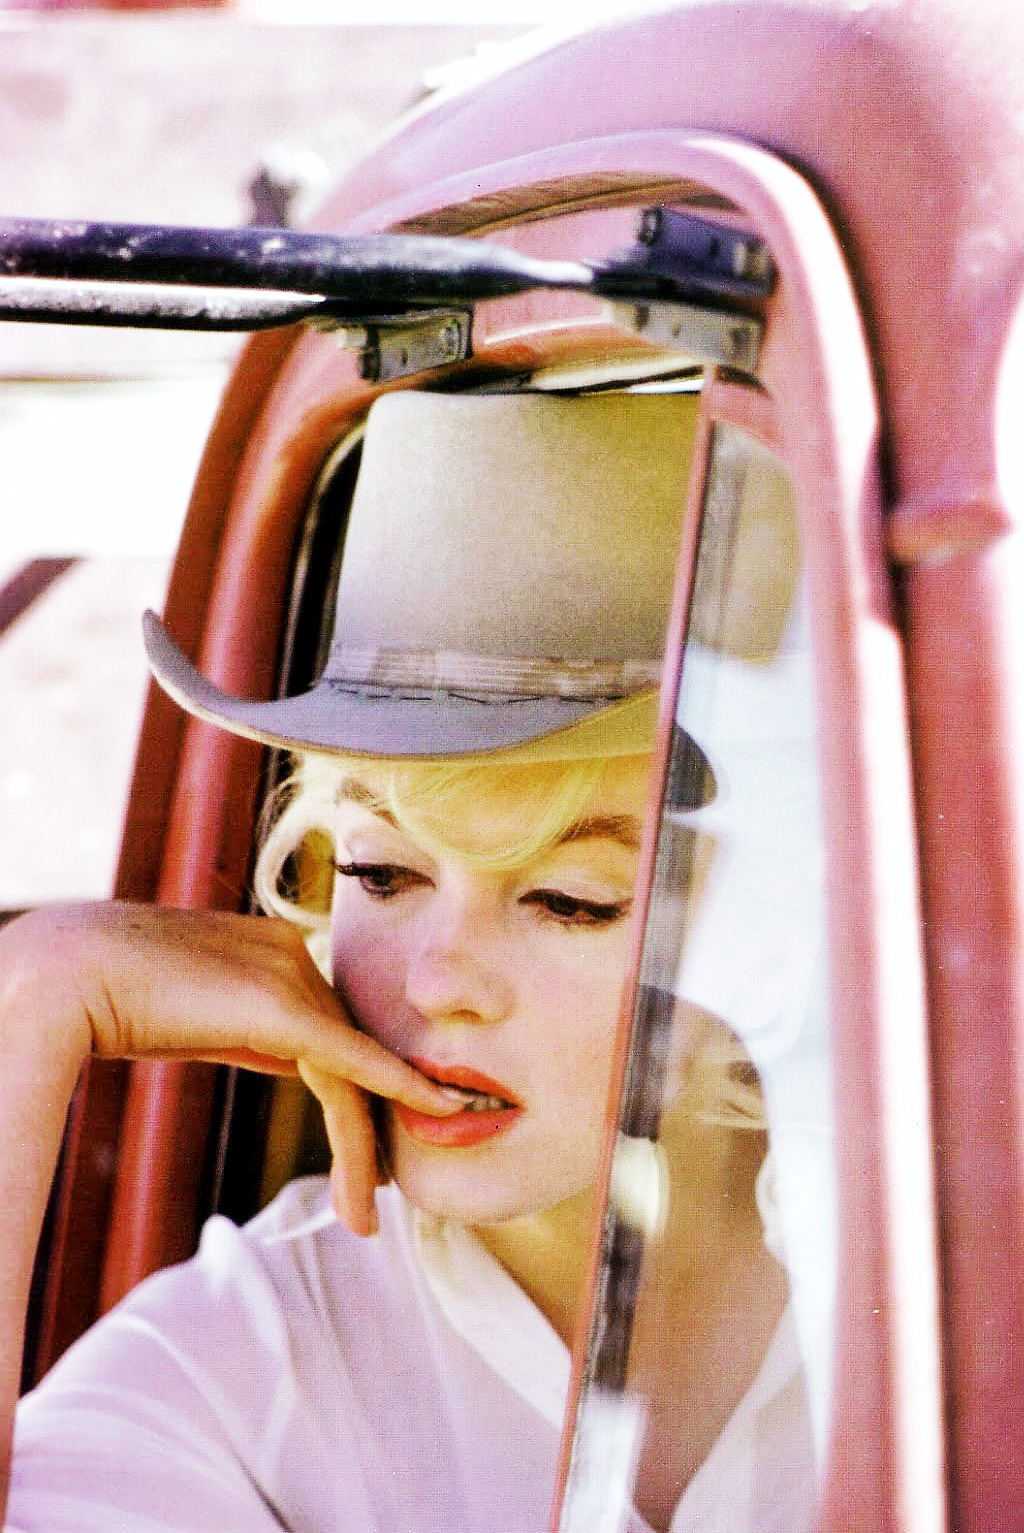 Marilyn Monroe on set of 'The Misfits', photographed by Eve Arnold, 1960.